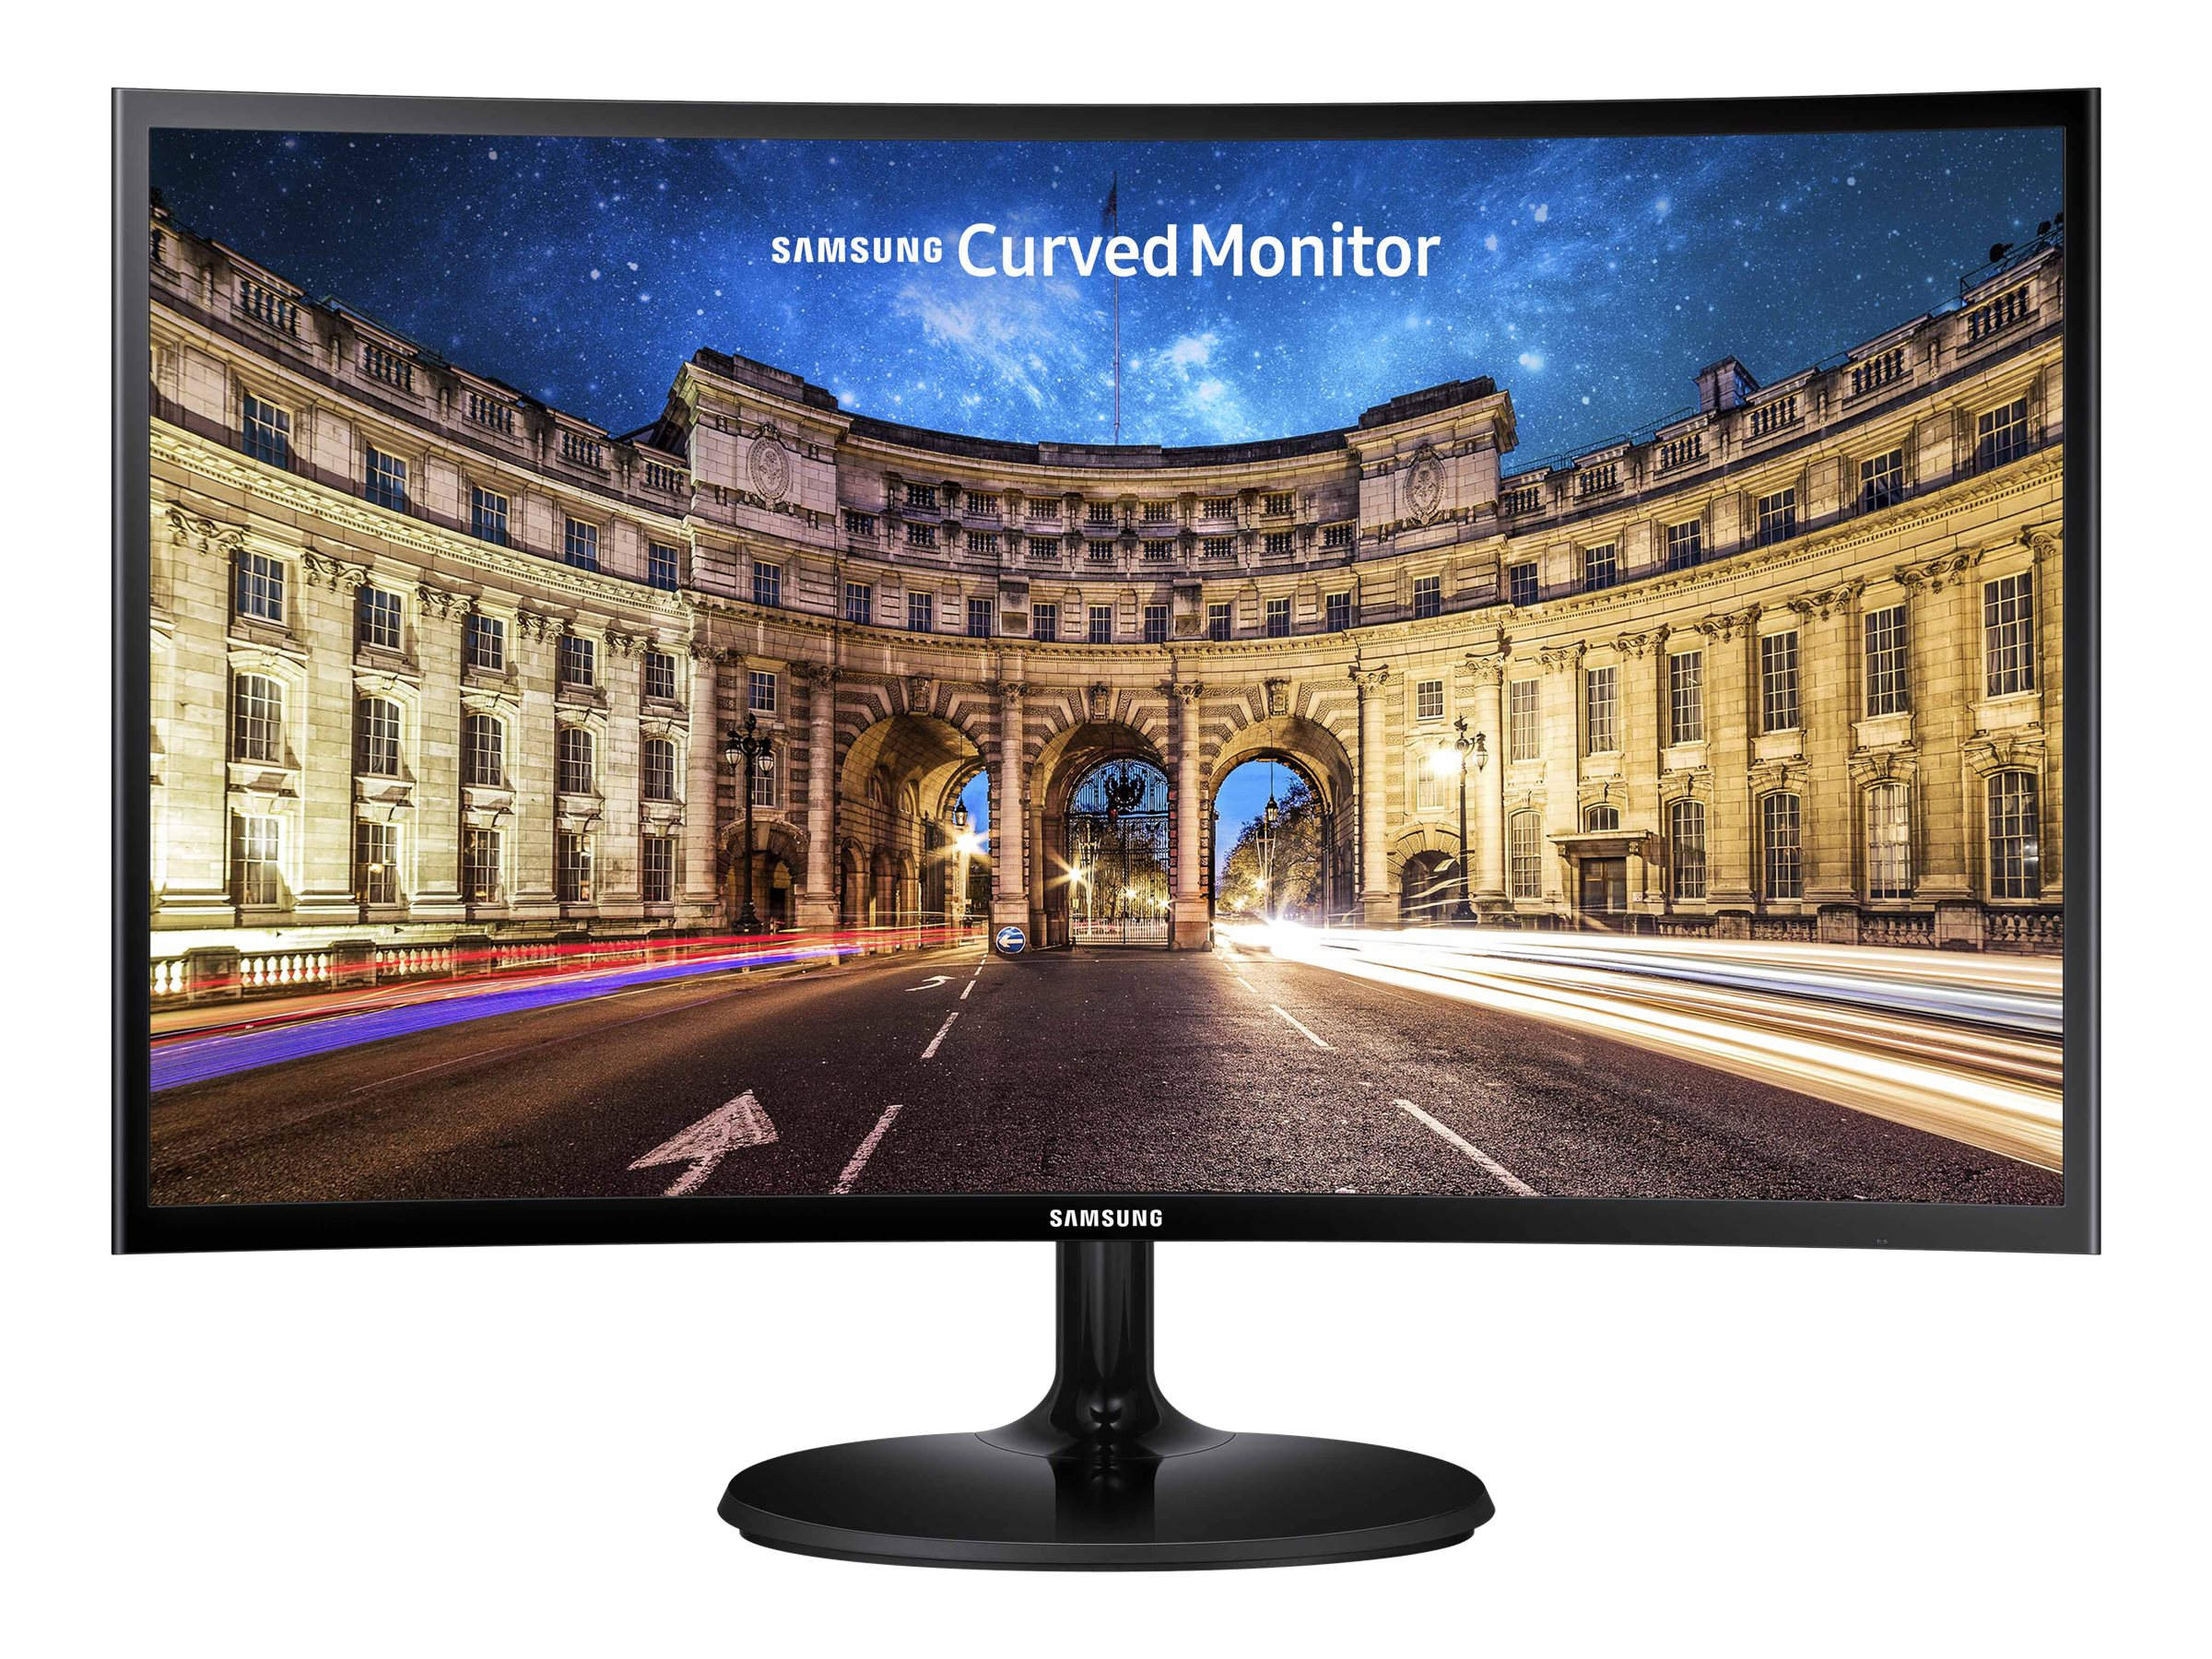 Samsung 27 CF390 Full HD LED-LCD Curved Monitor, Black, C27F390FHN